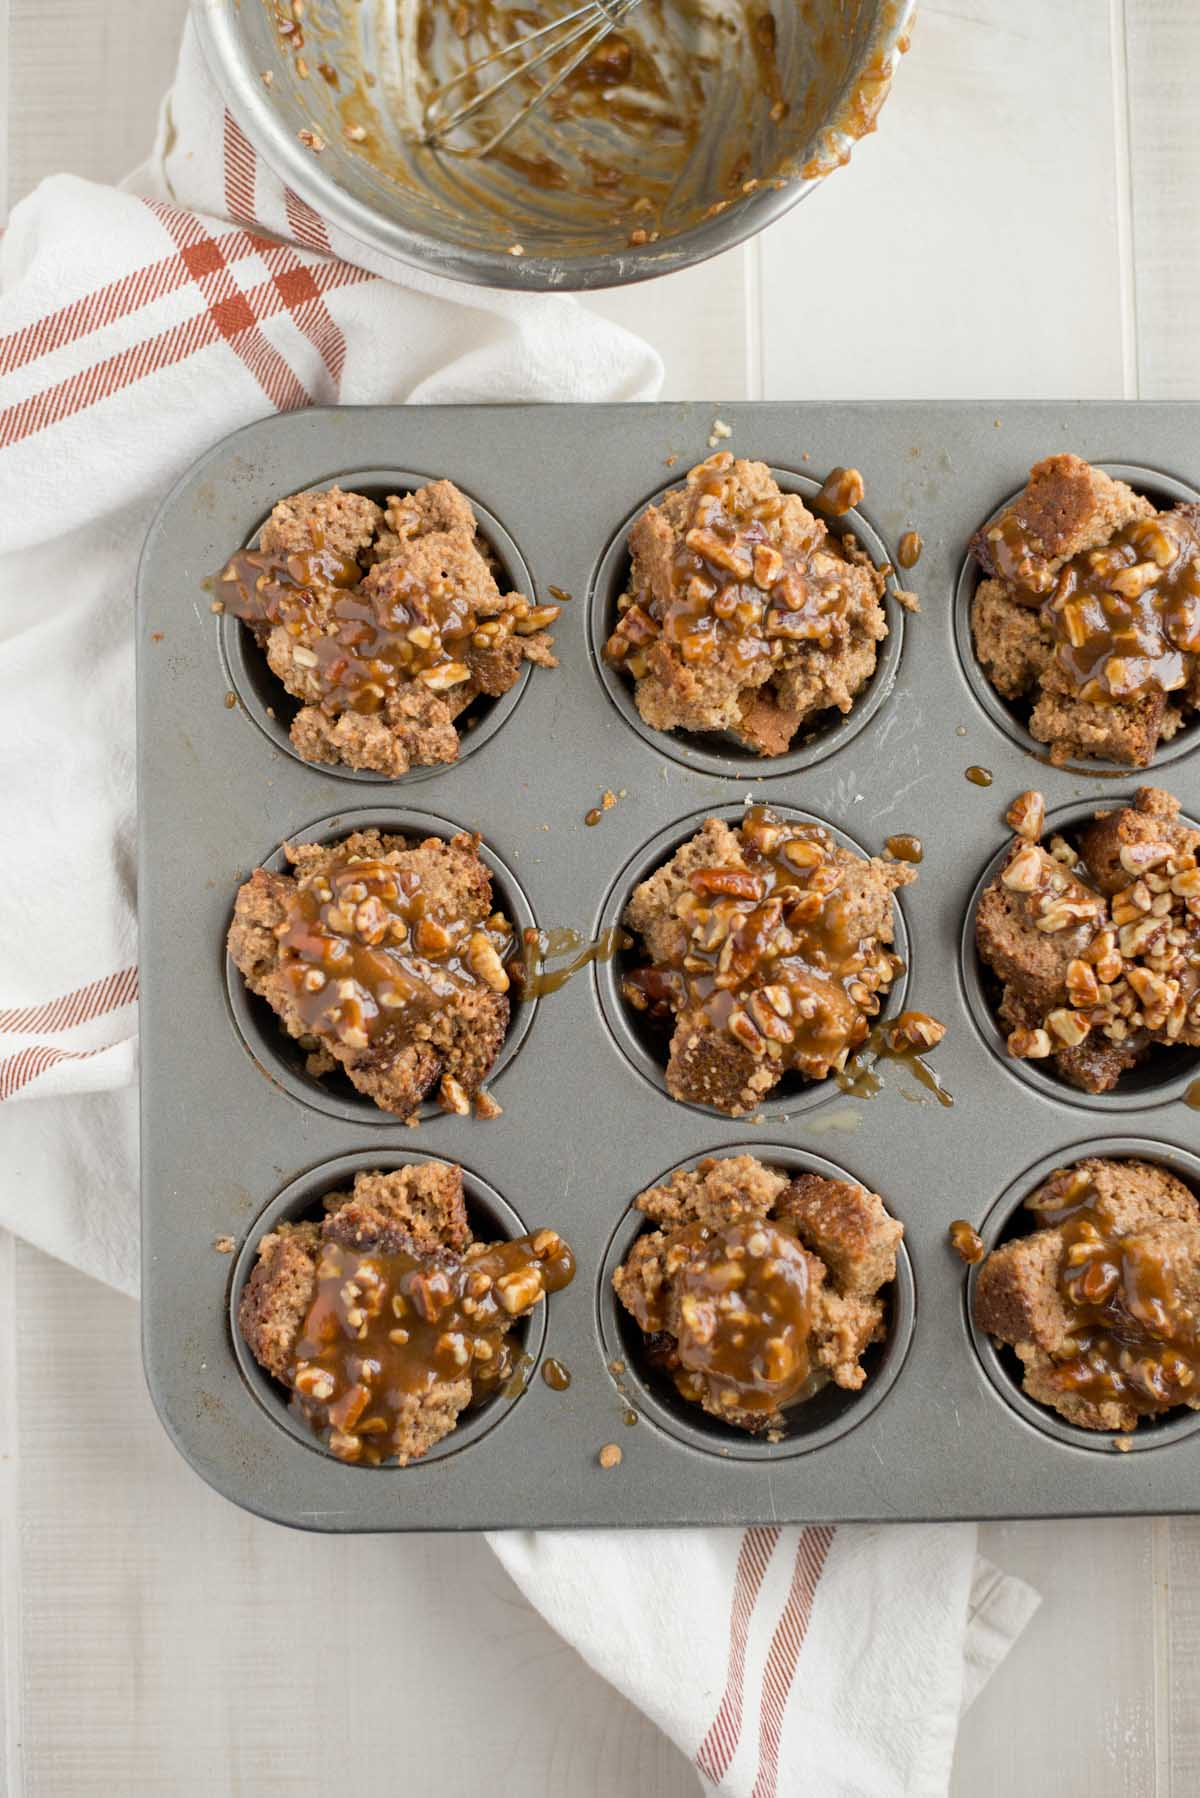 Change up breakfast with these quick, easy and on-the-go banana bread french toast cups